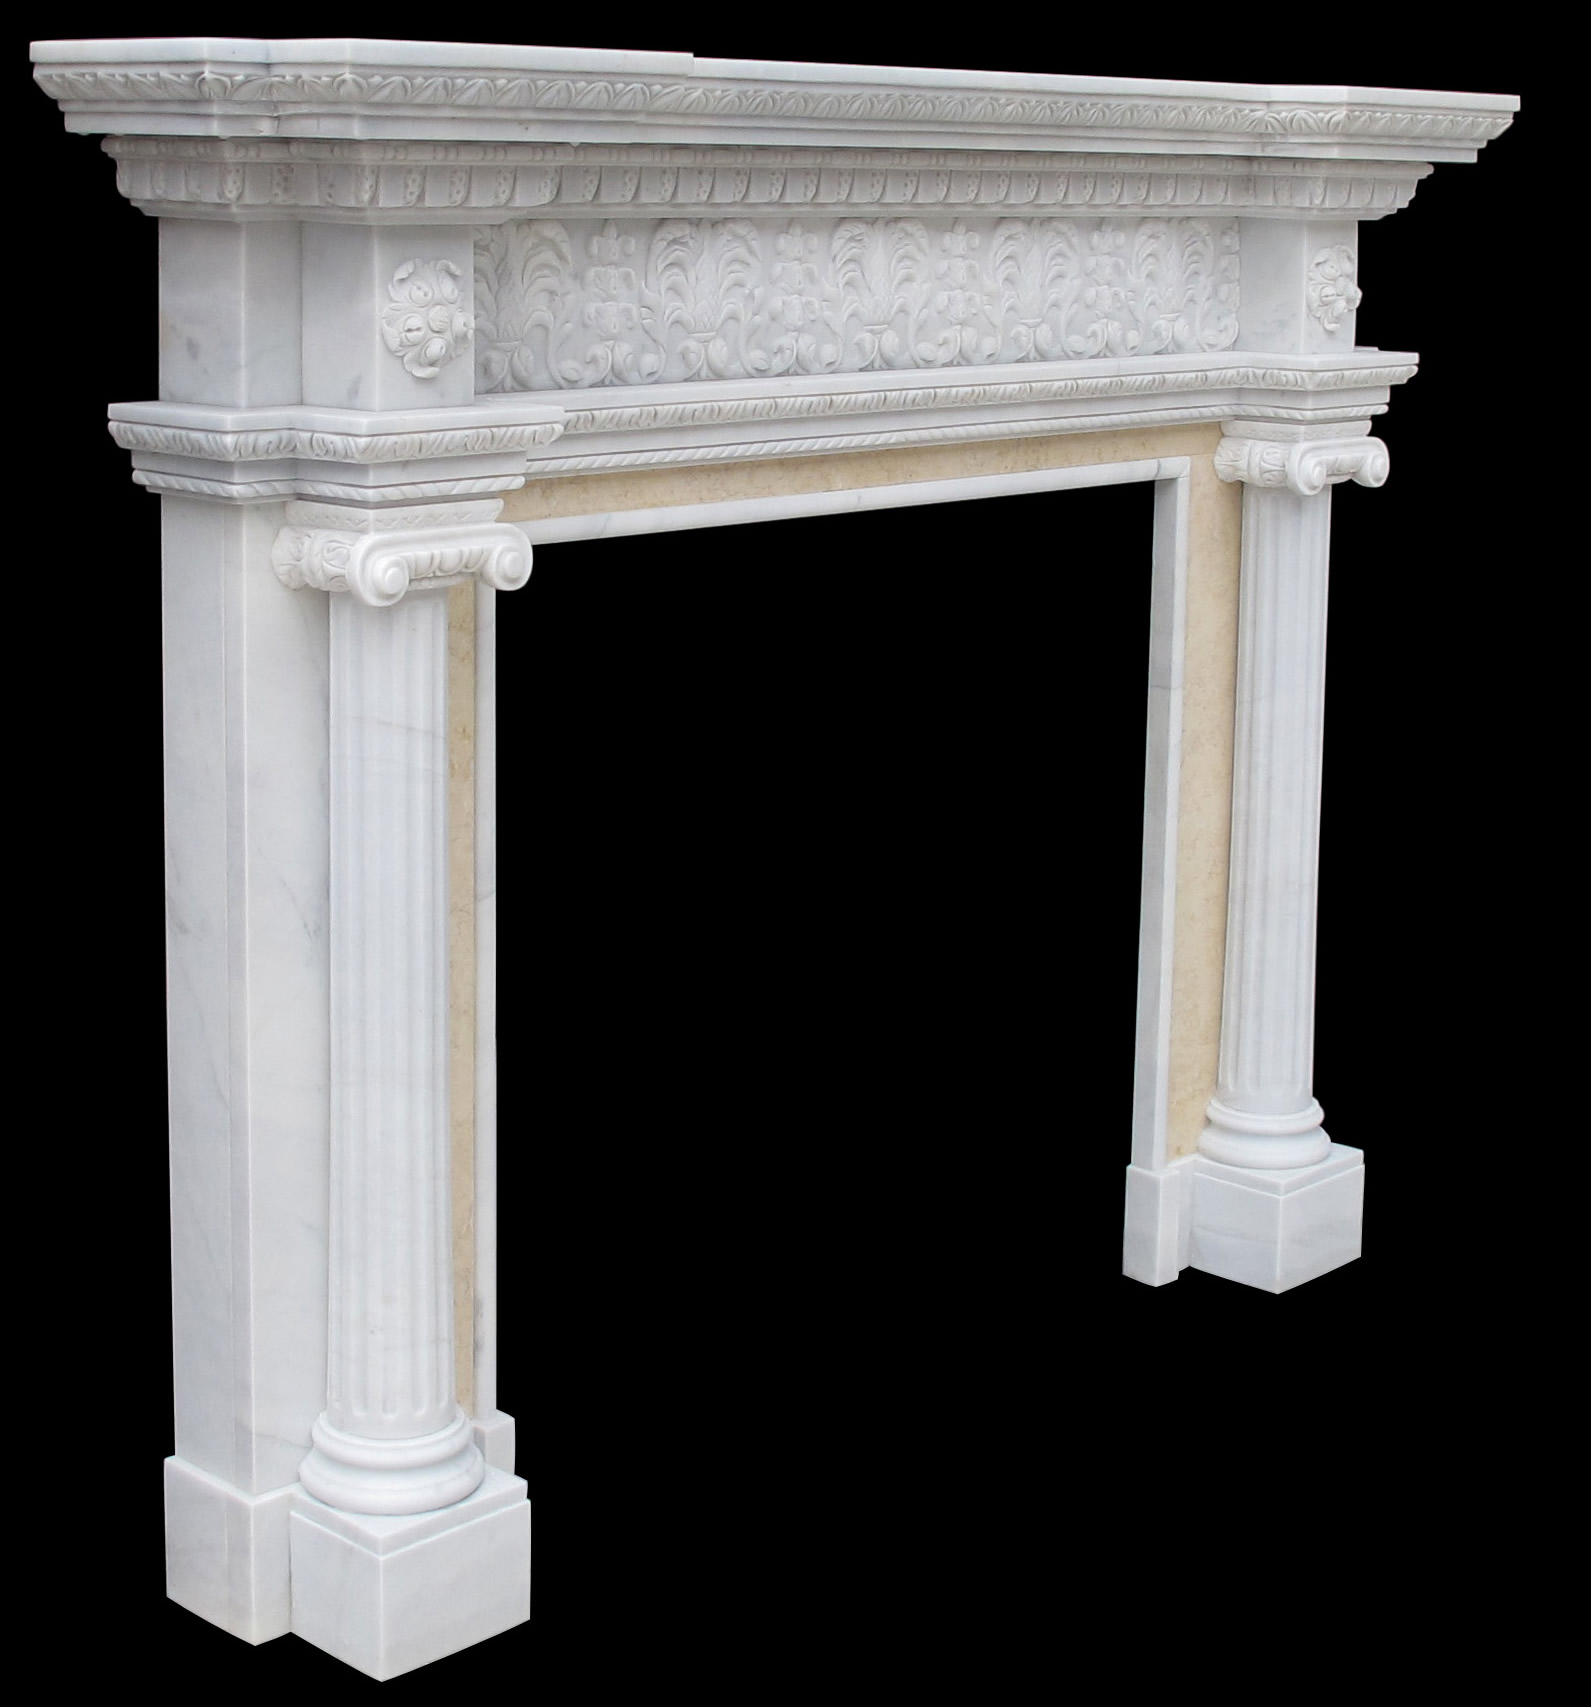 Ionic Albany New York Fireplace Sale